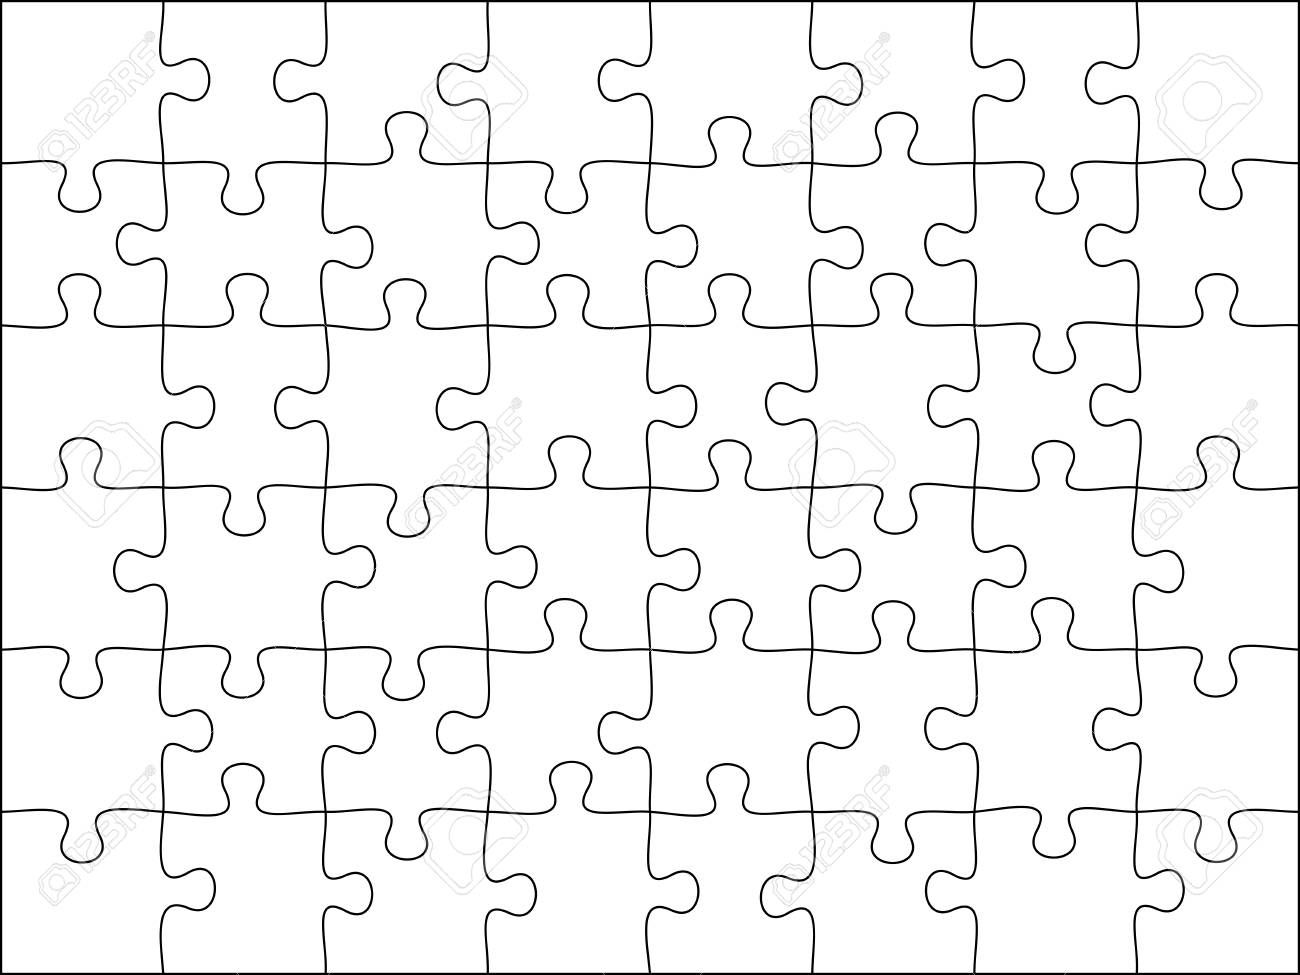 004 Excellent Jig Saw Puzzle Template Photo  Printable Blank Jigsaw Vector Free PngFull